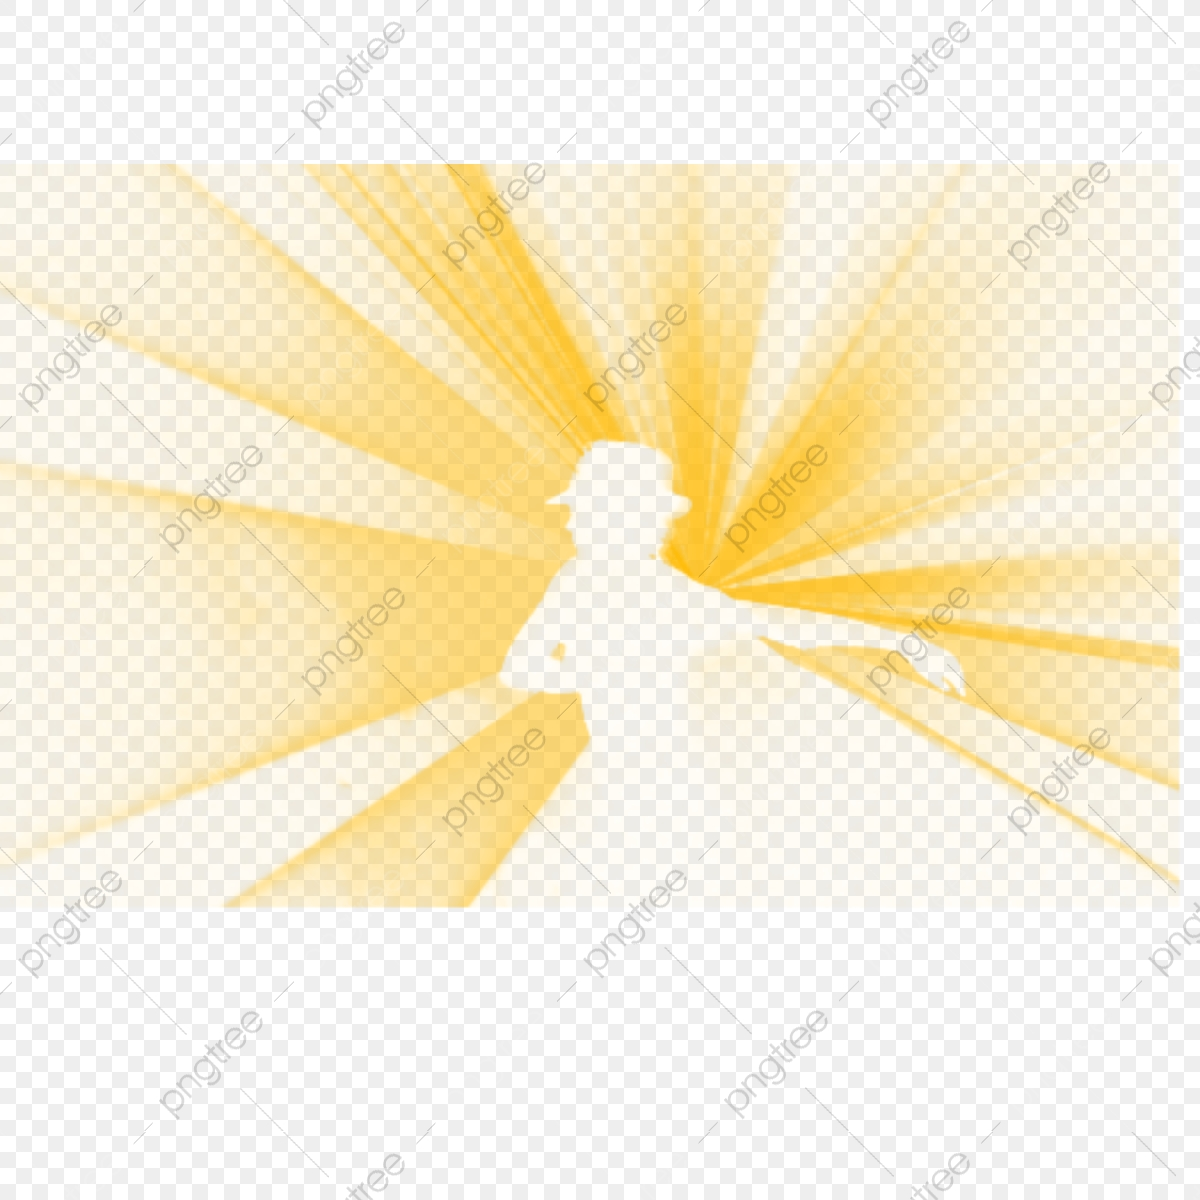 Sunlight Beam Effect Photoshop Png Free Psd, Light Png For Picsart